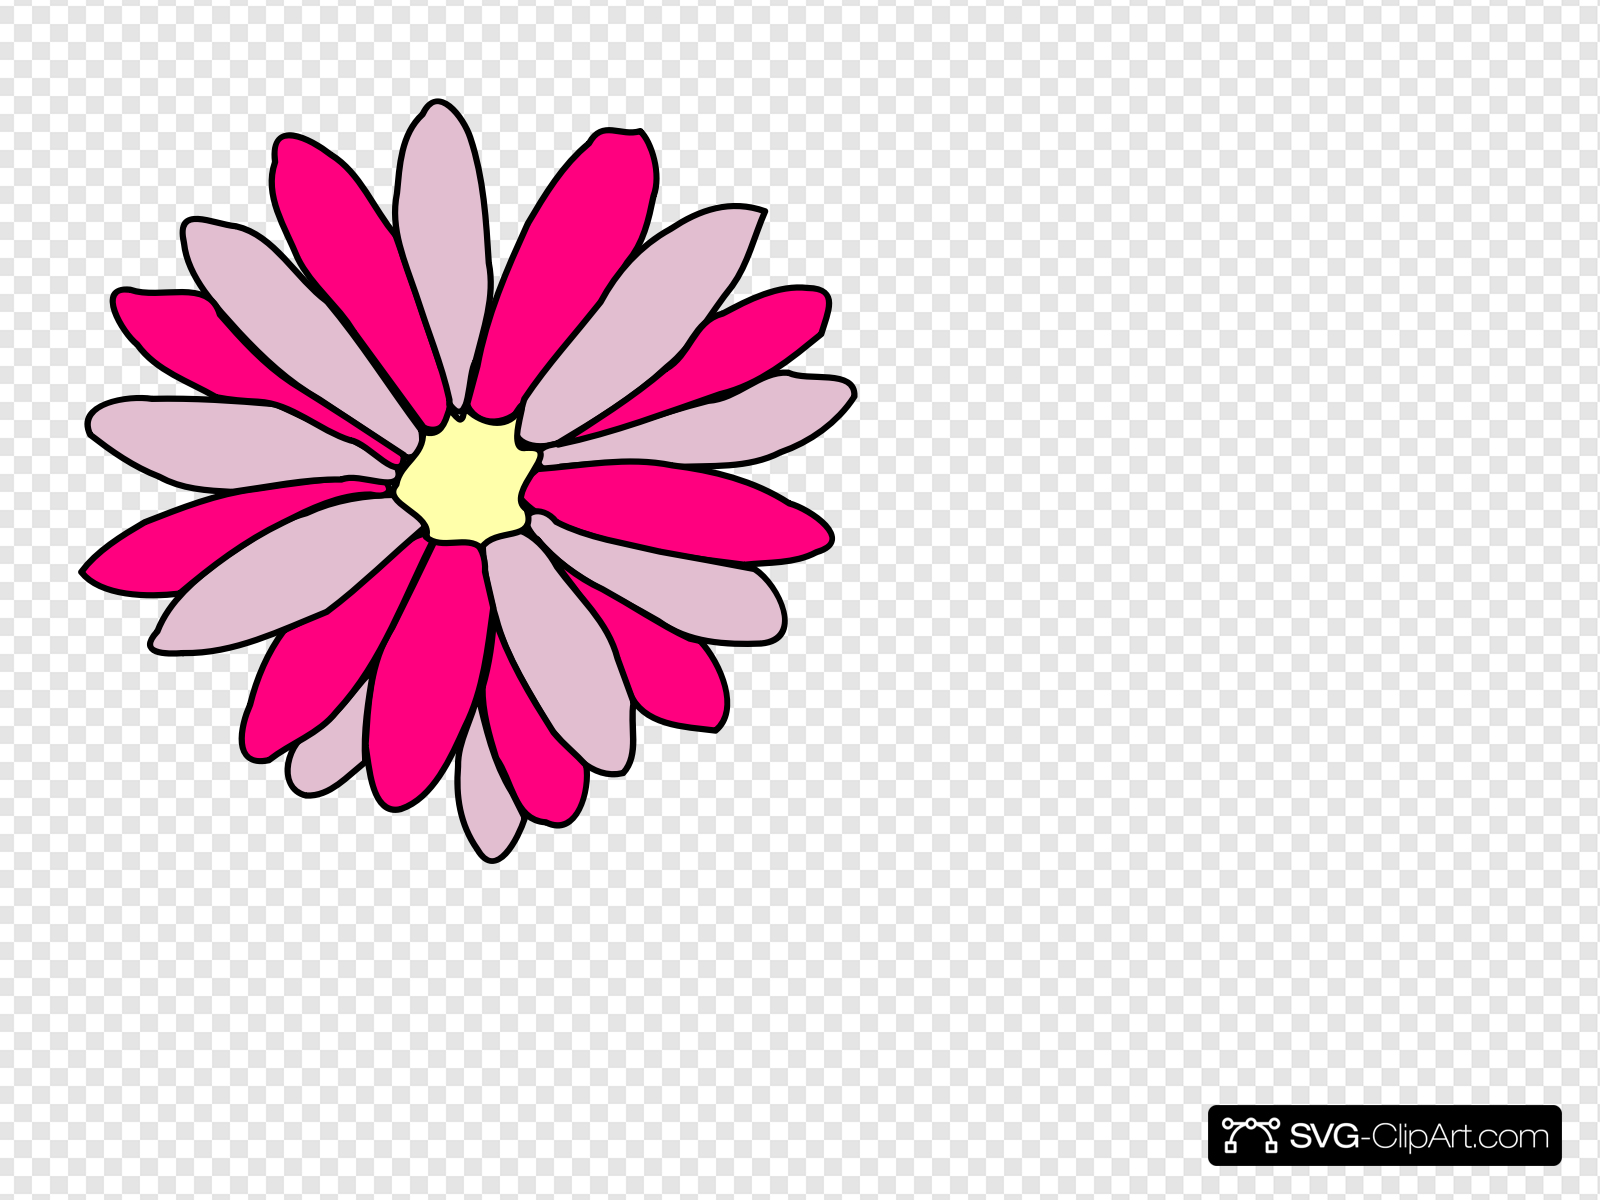 Pink Daisy Flower Clip art, Icon and SVG.